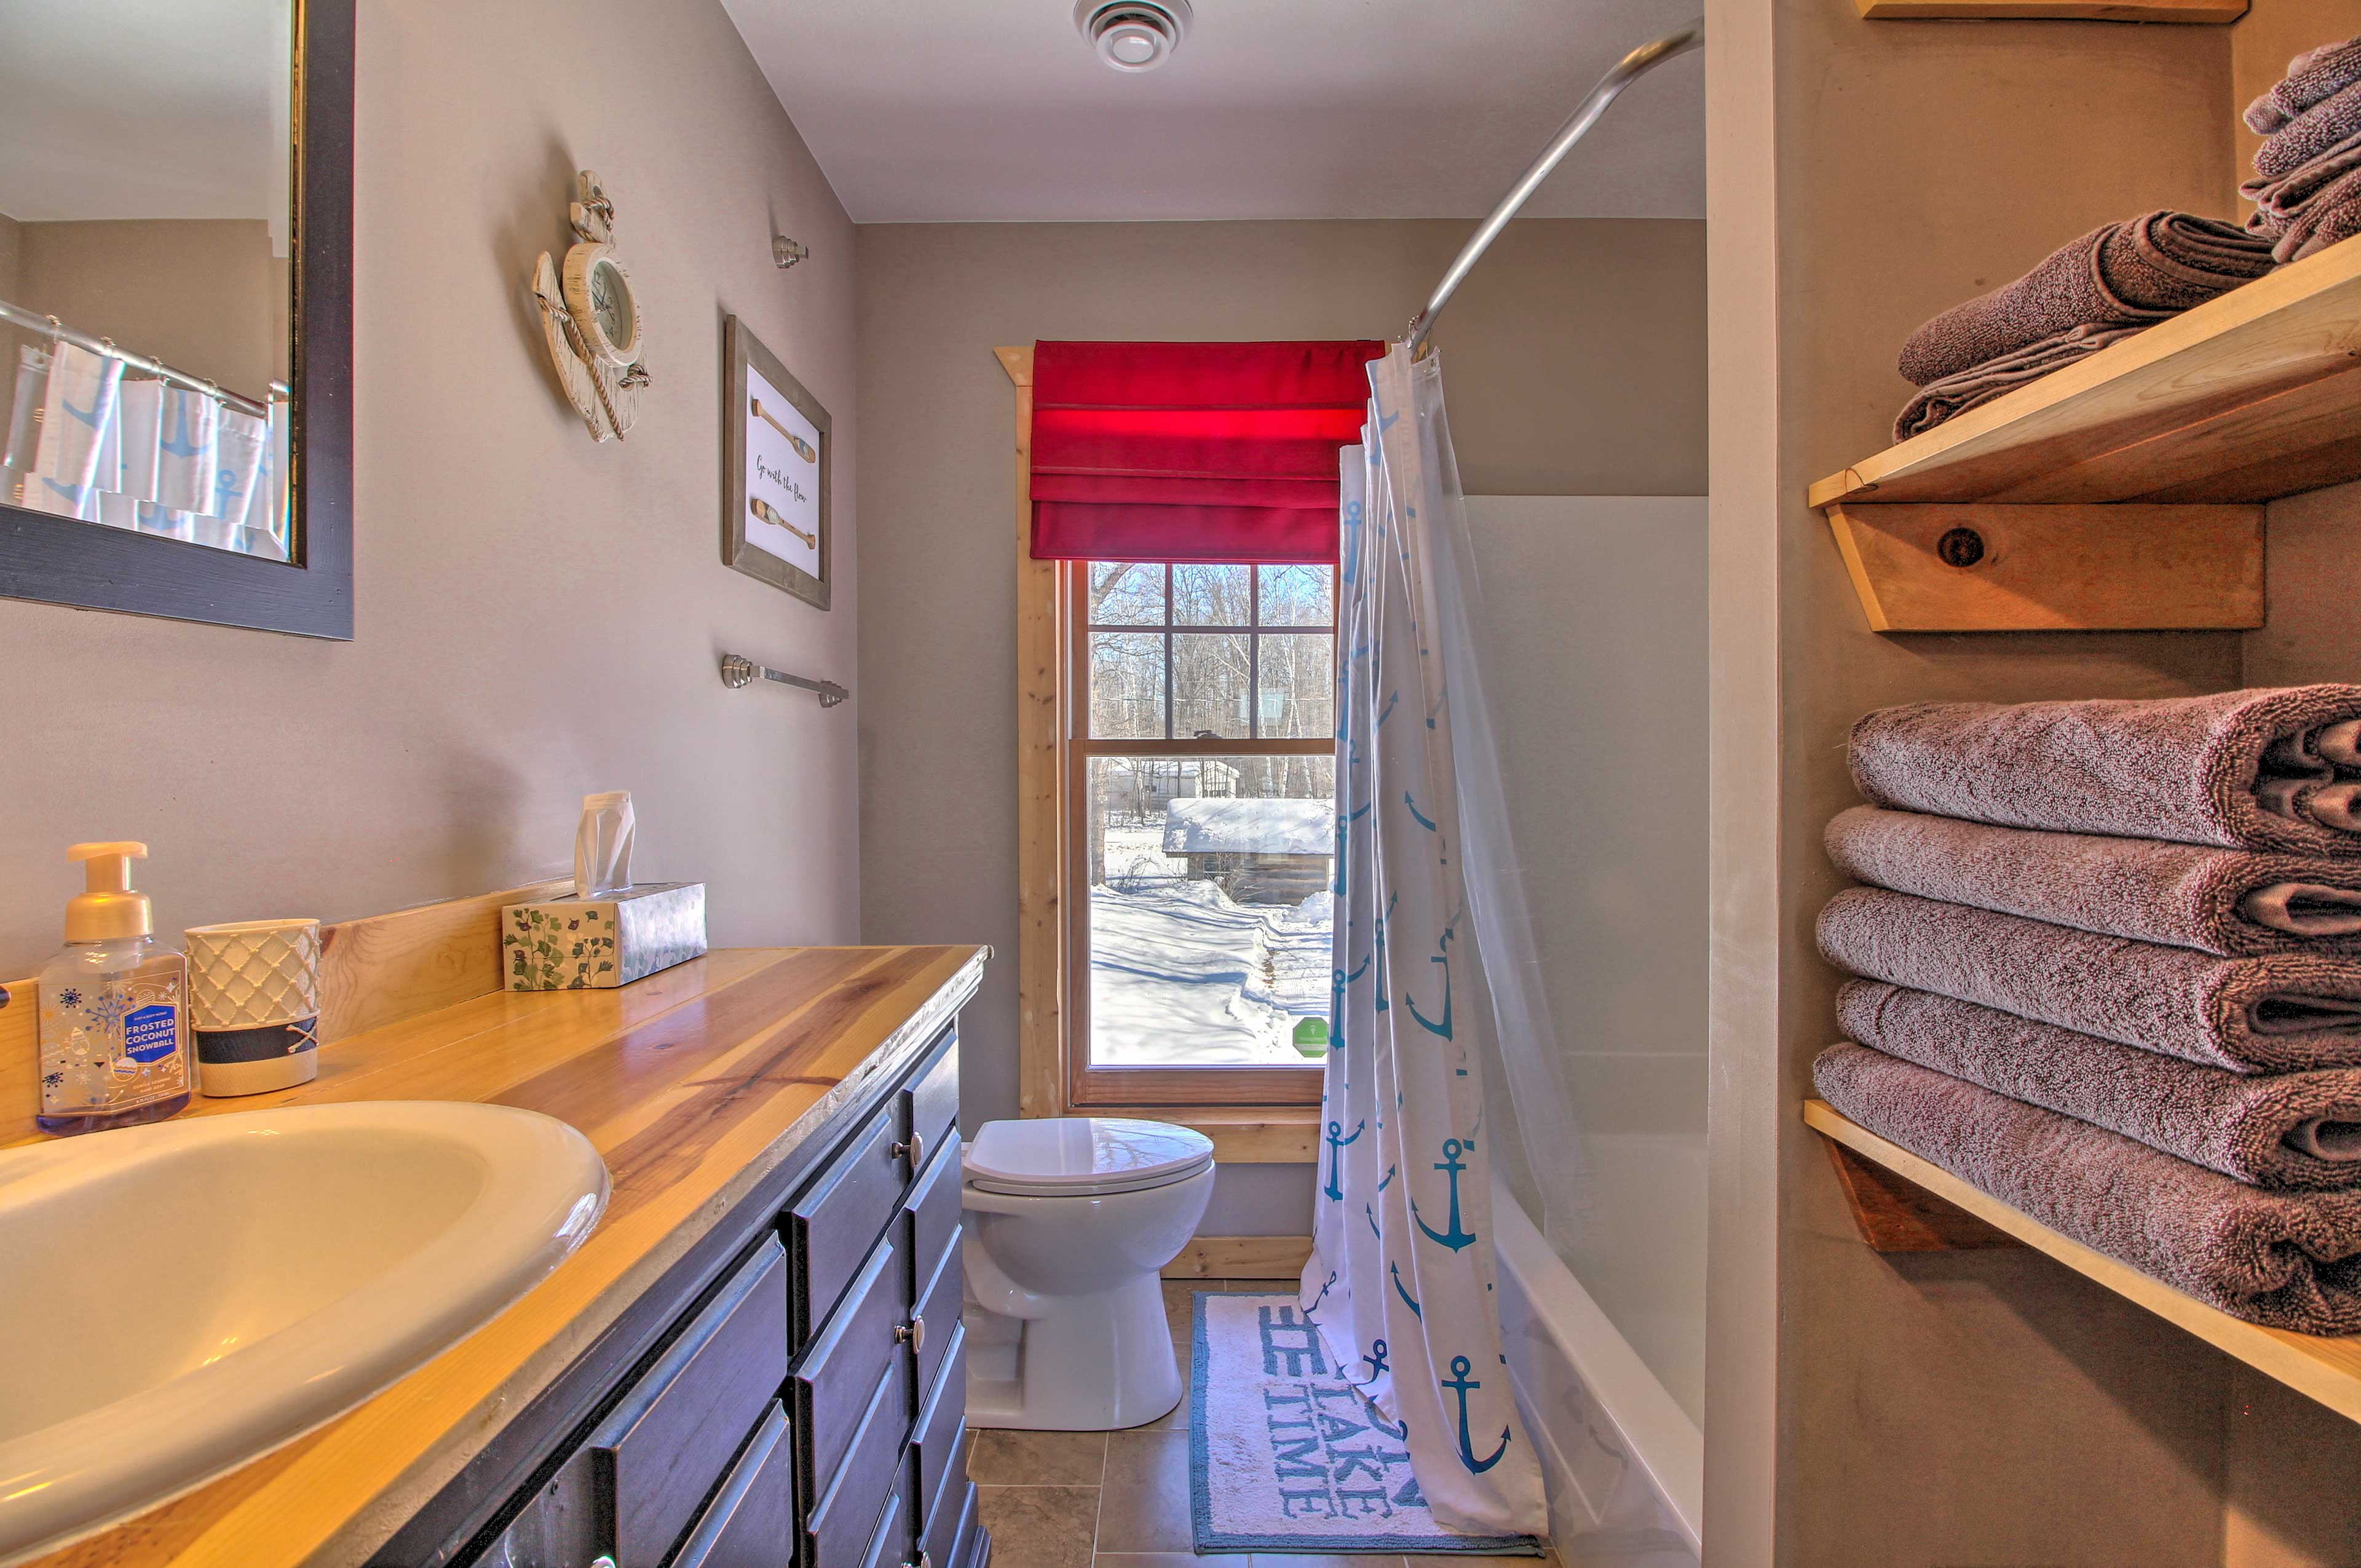 The final bathroom offers a shower/tub combo.